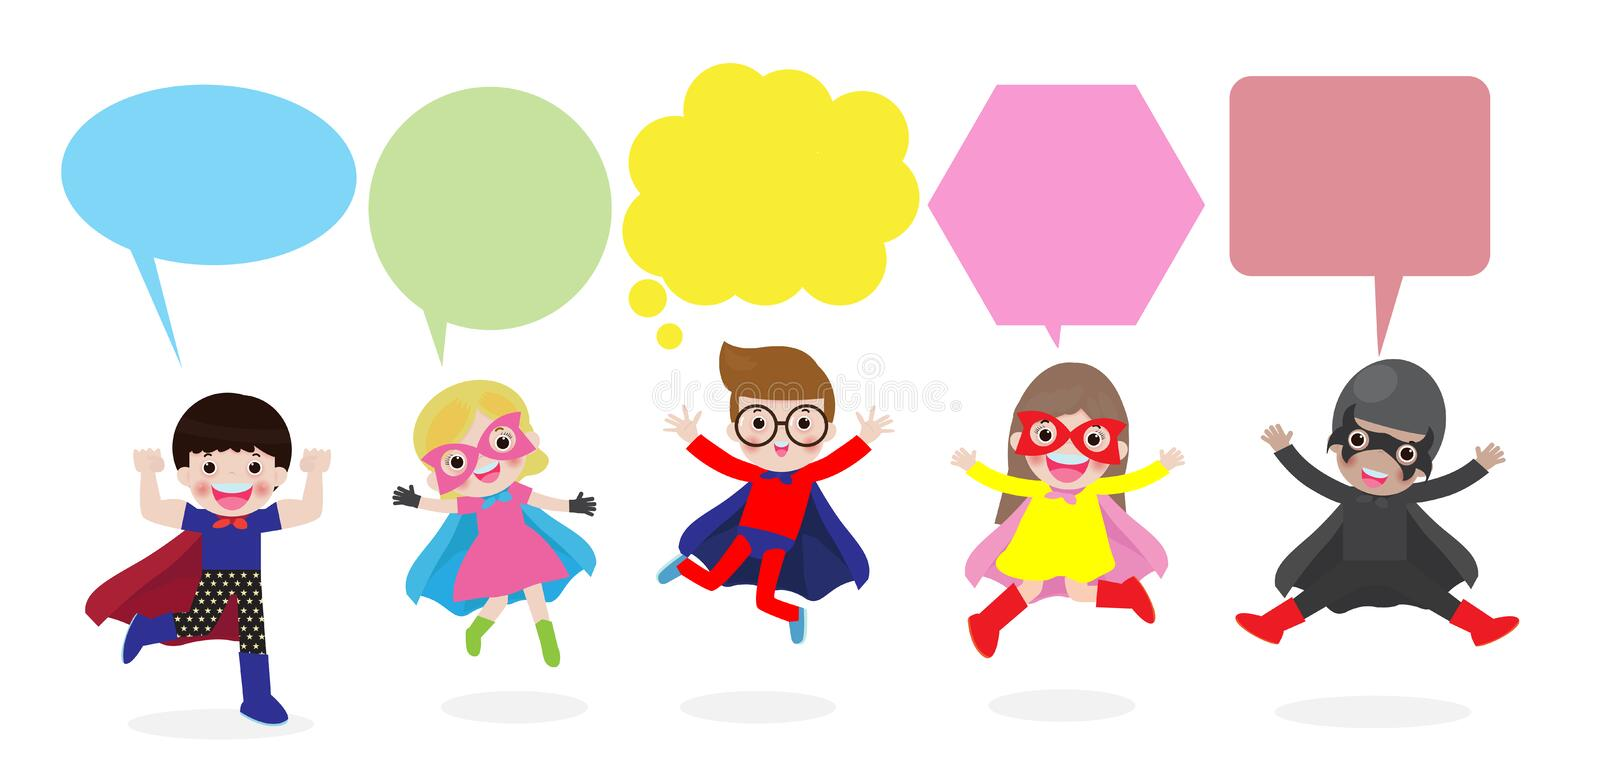 Cute superhero kids with speech bubbles, Set of superhero child with speech bubbles isolated on white background. Cute superhero kids with speech bubbles, Set royalty free illustration